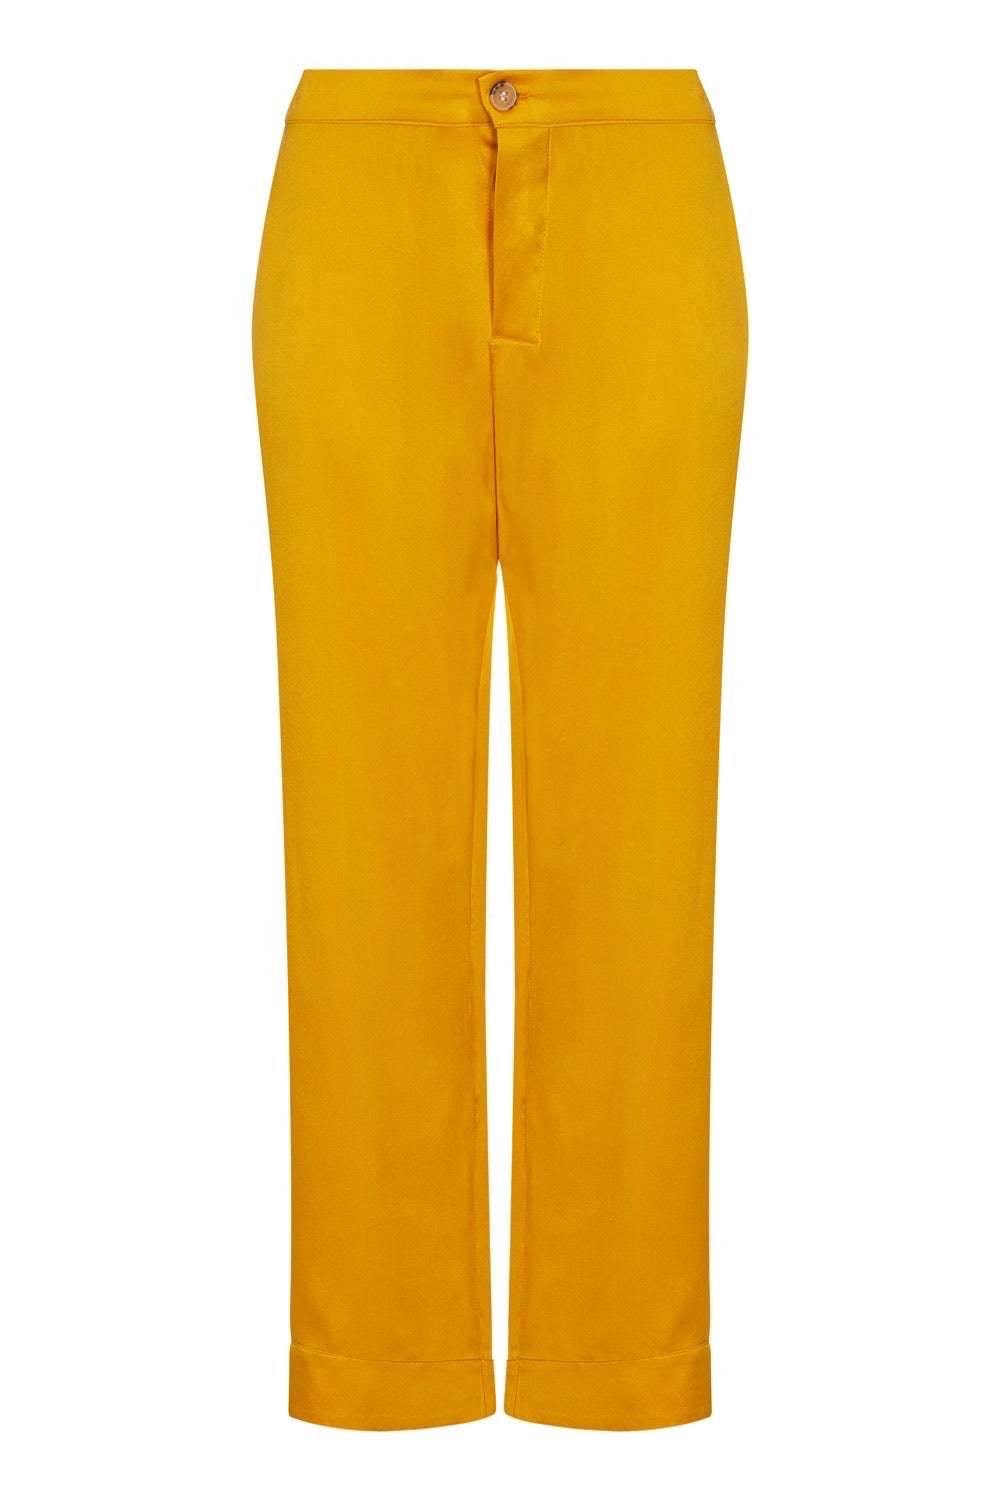 ASCENO ANTIBES SUNFLOWER SILK CROPPED TROUSER